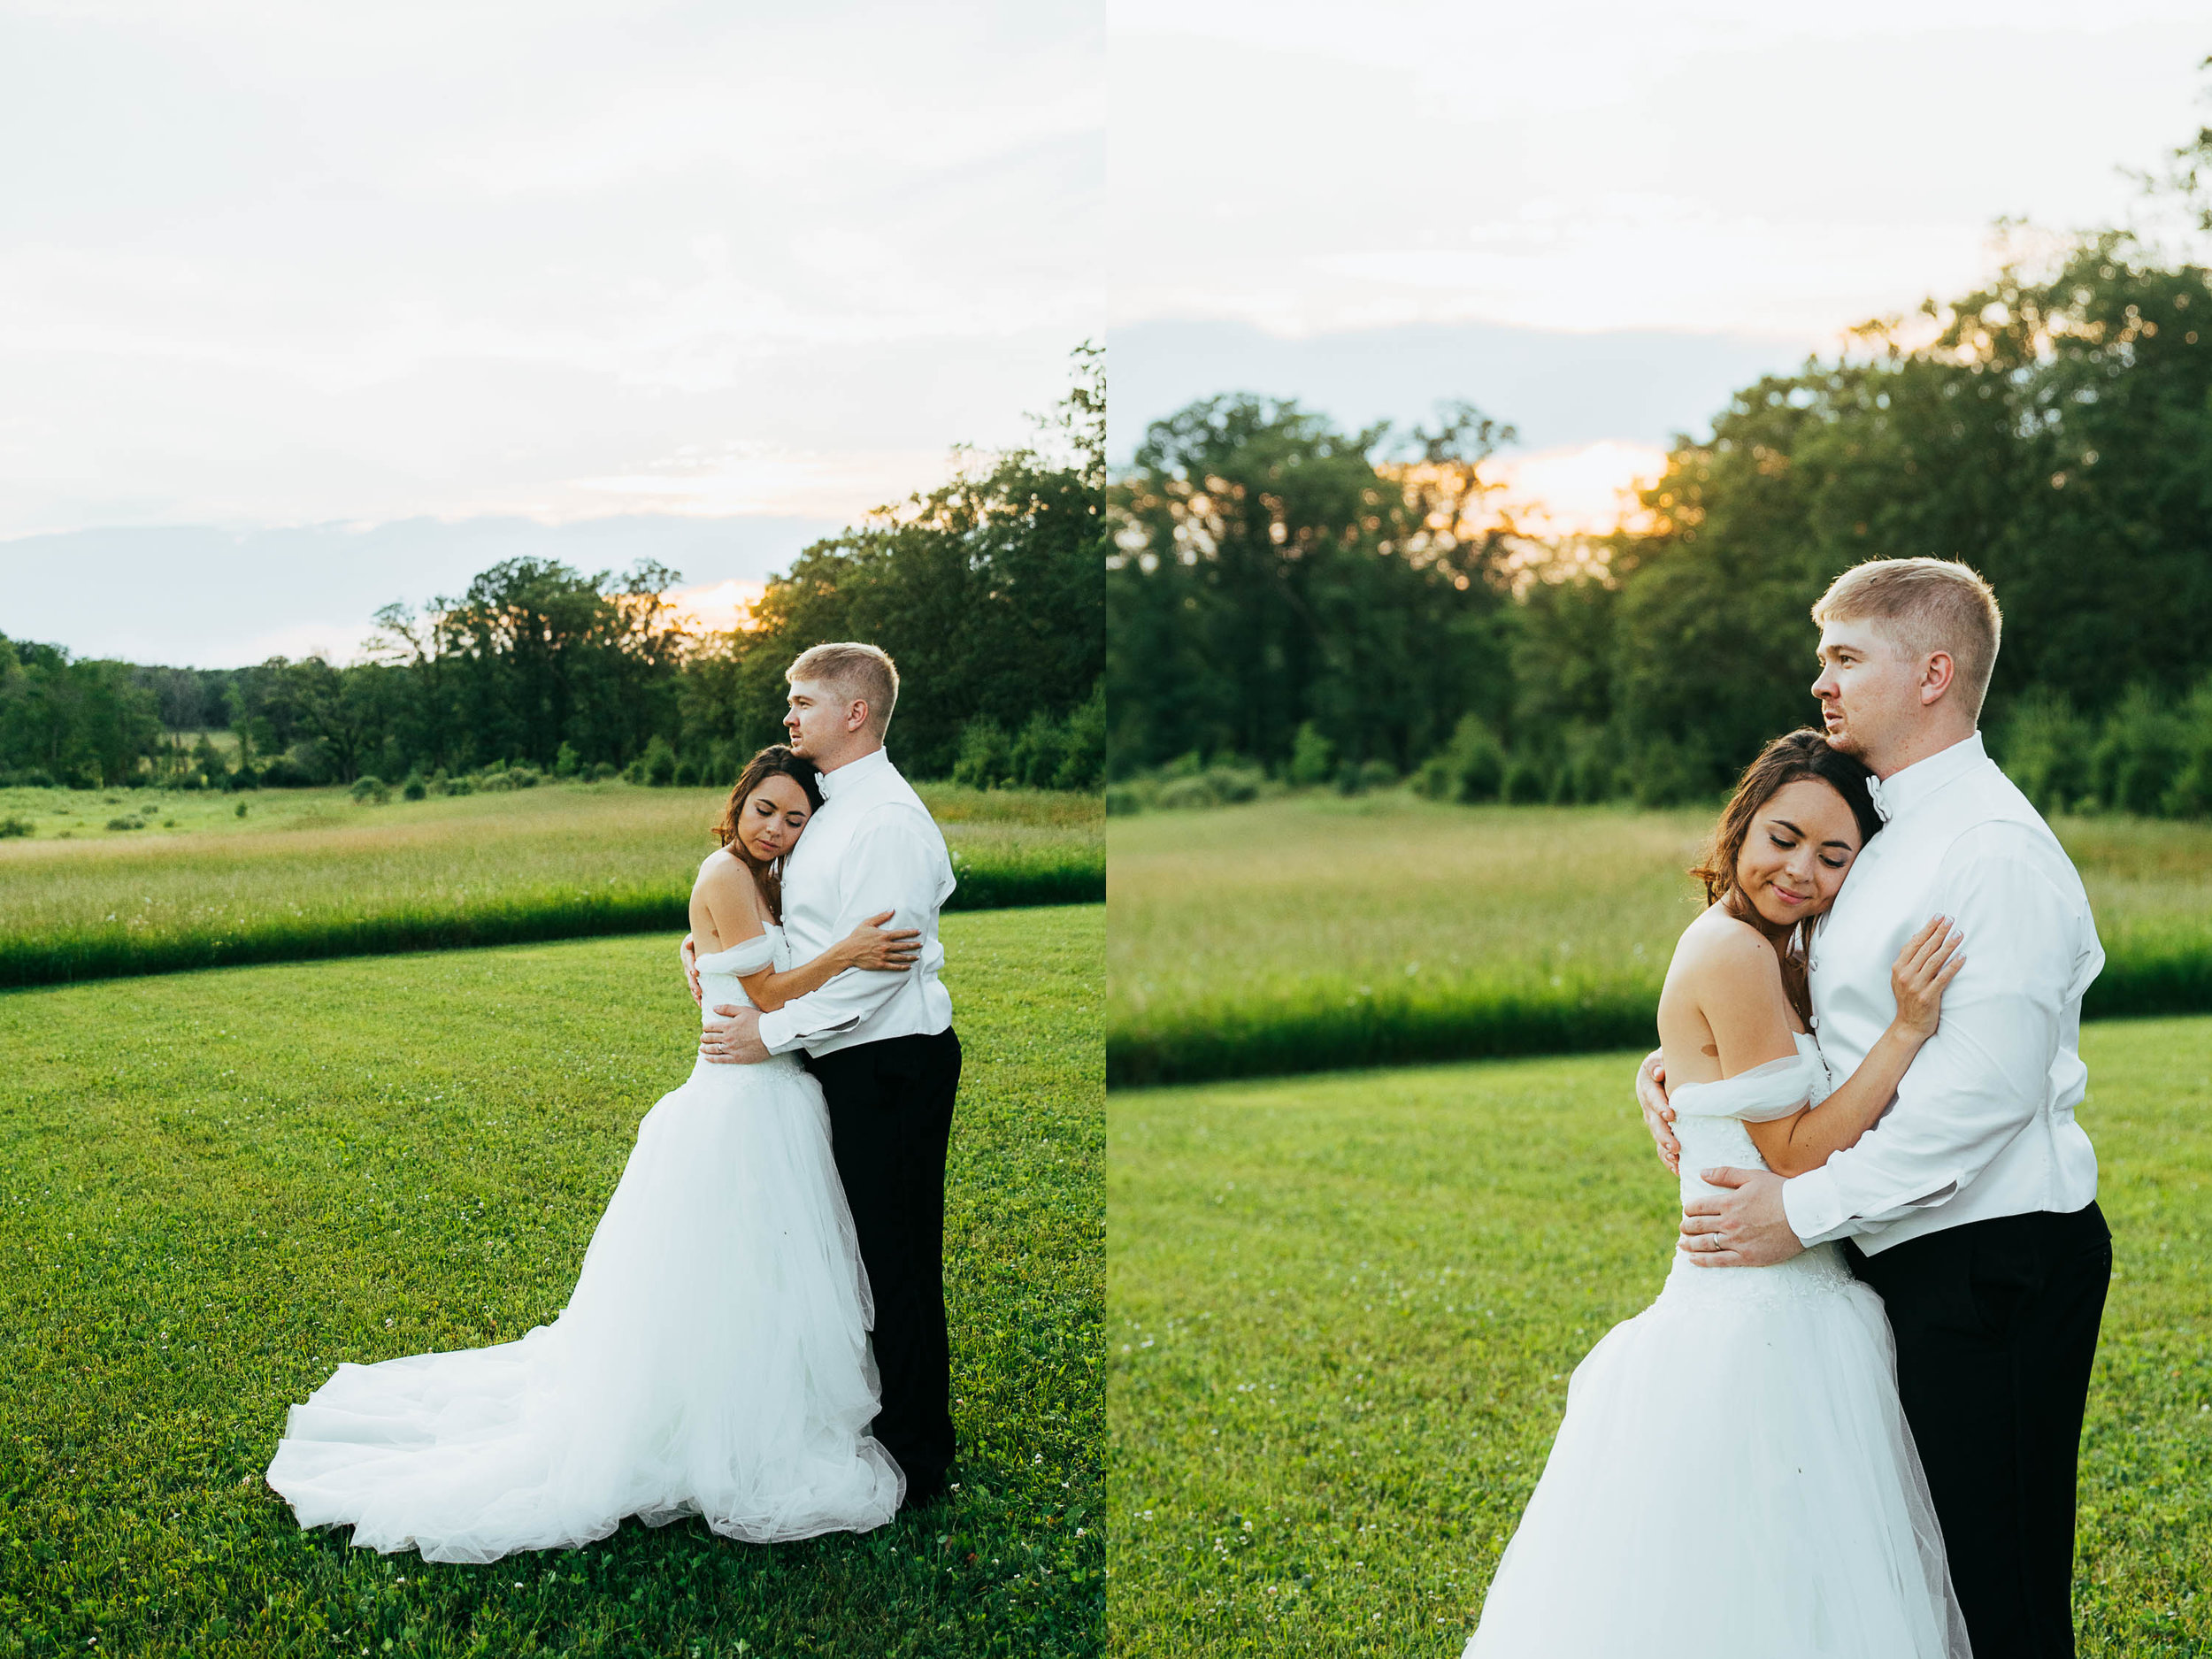 Minnesota_Bride_Groom_Portrait_Sunset_Portraits_Vineyard1.jpg